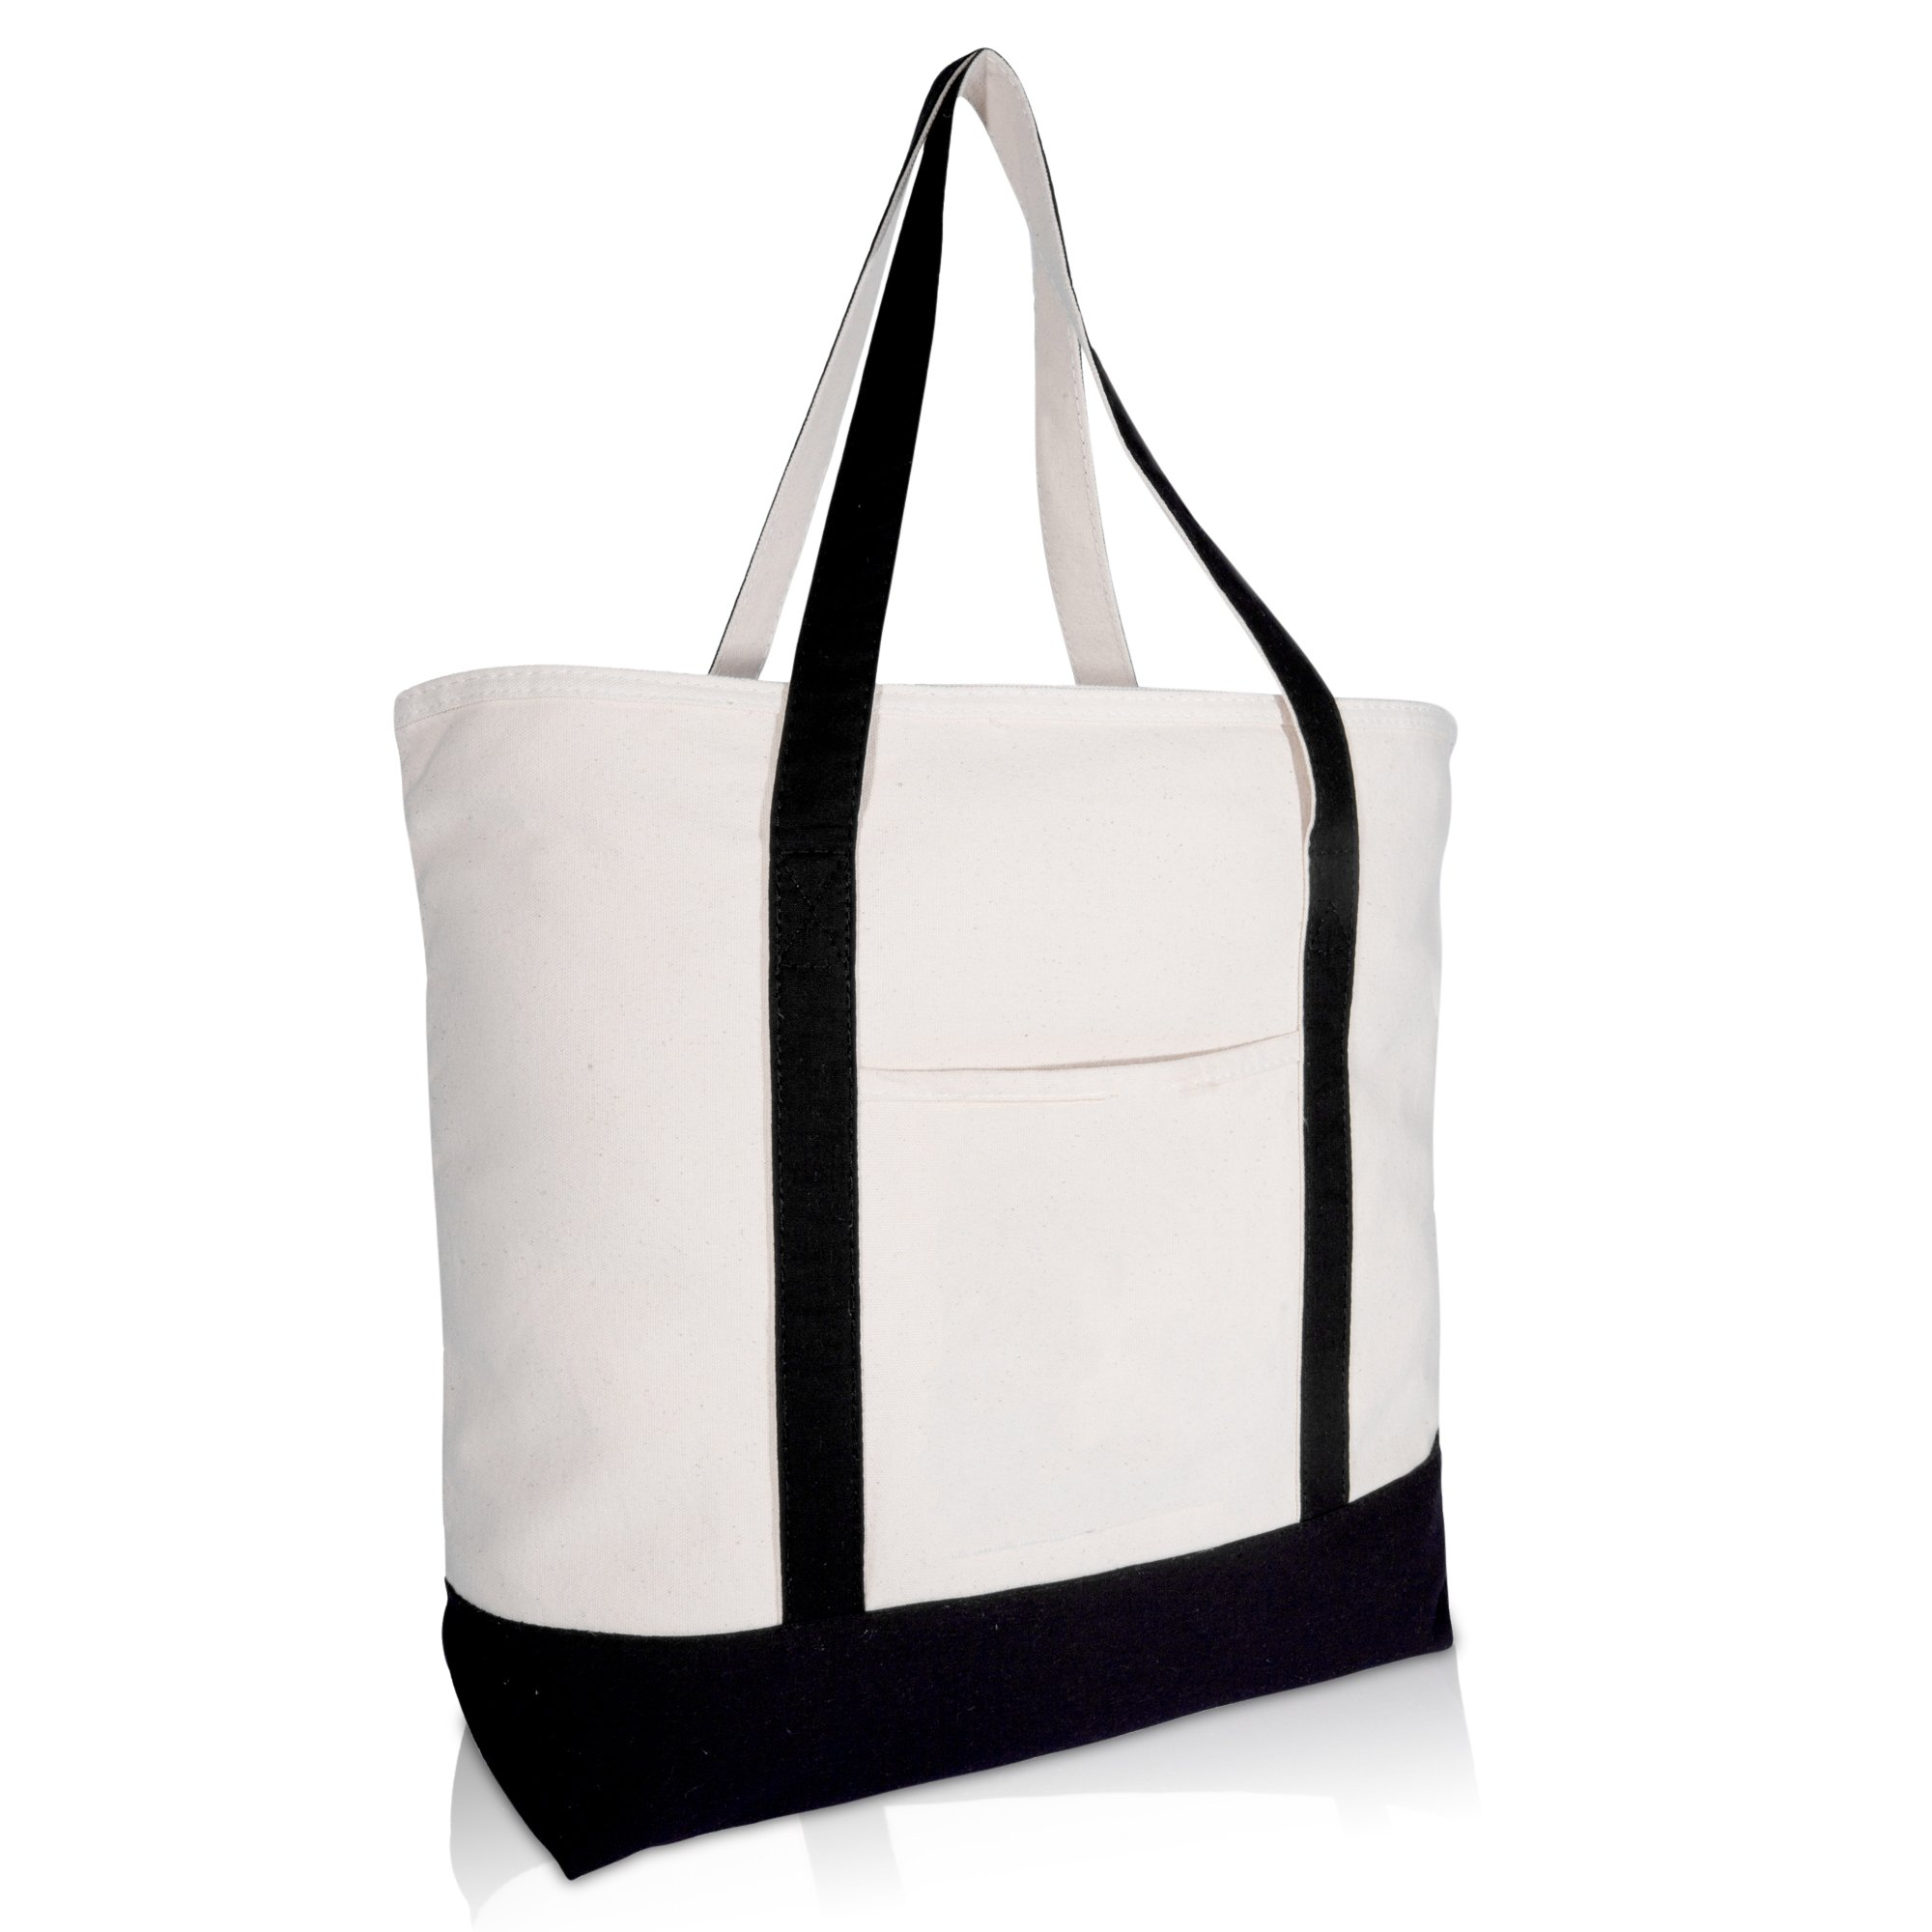 DALIX 22'' Large Cotton Canvas Zippered Shopping Tote Grocery Bag in Black